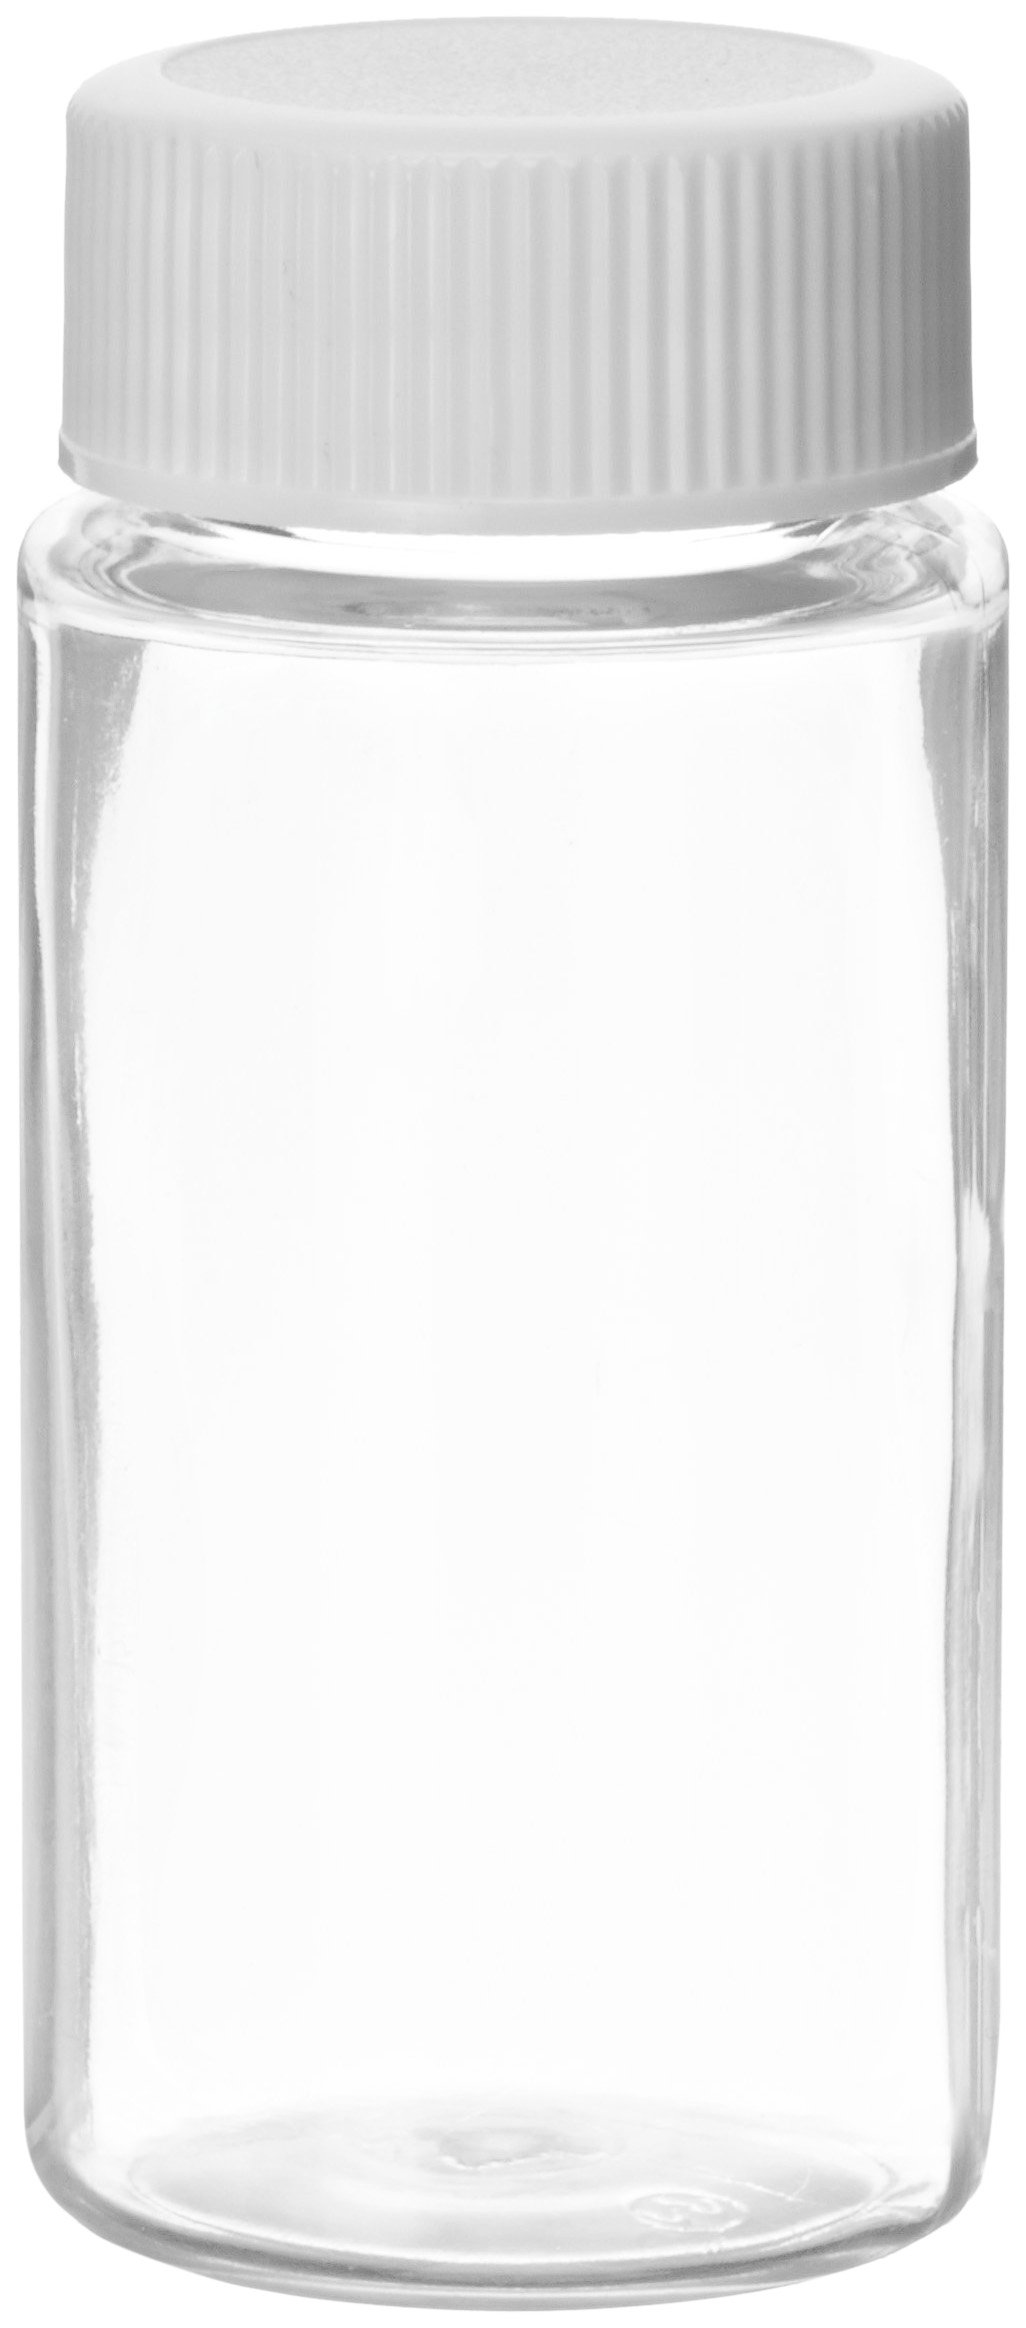 Wheaton 986751 PET 20mL Liquid Scintillation Vial, with Polypropylene Metal Foil Lined Screw Cap Packaged Separately (Case of 500) by Wheaton